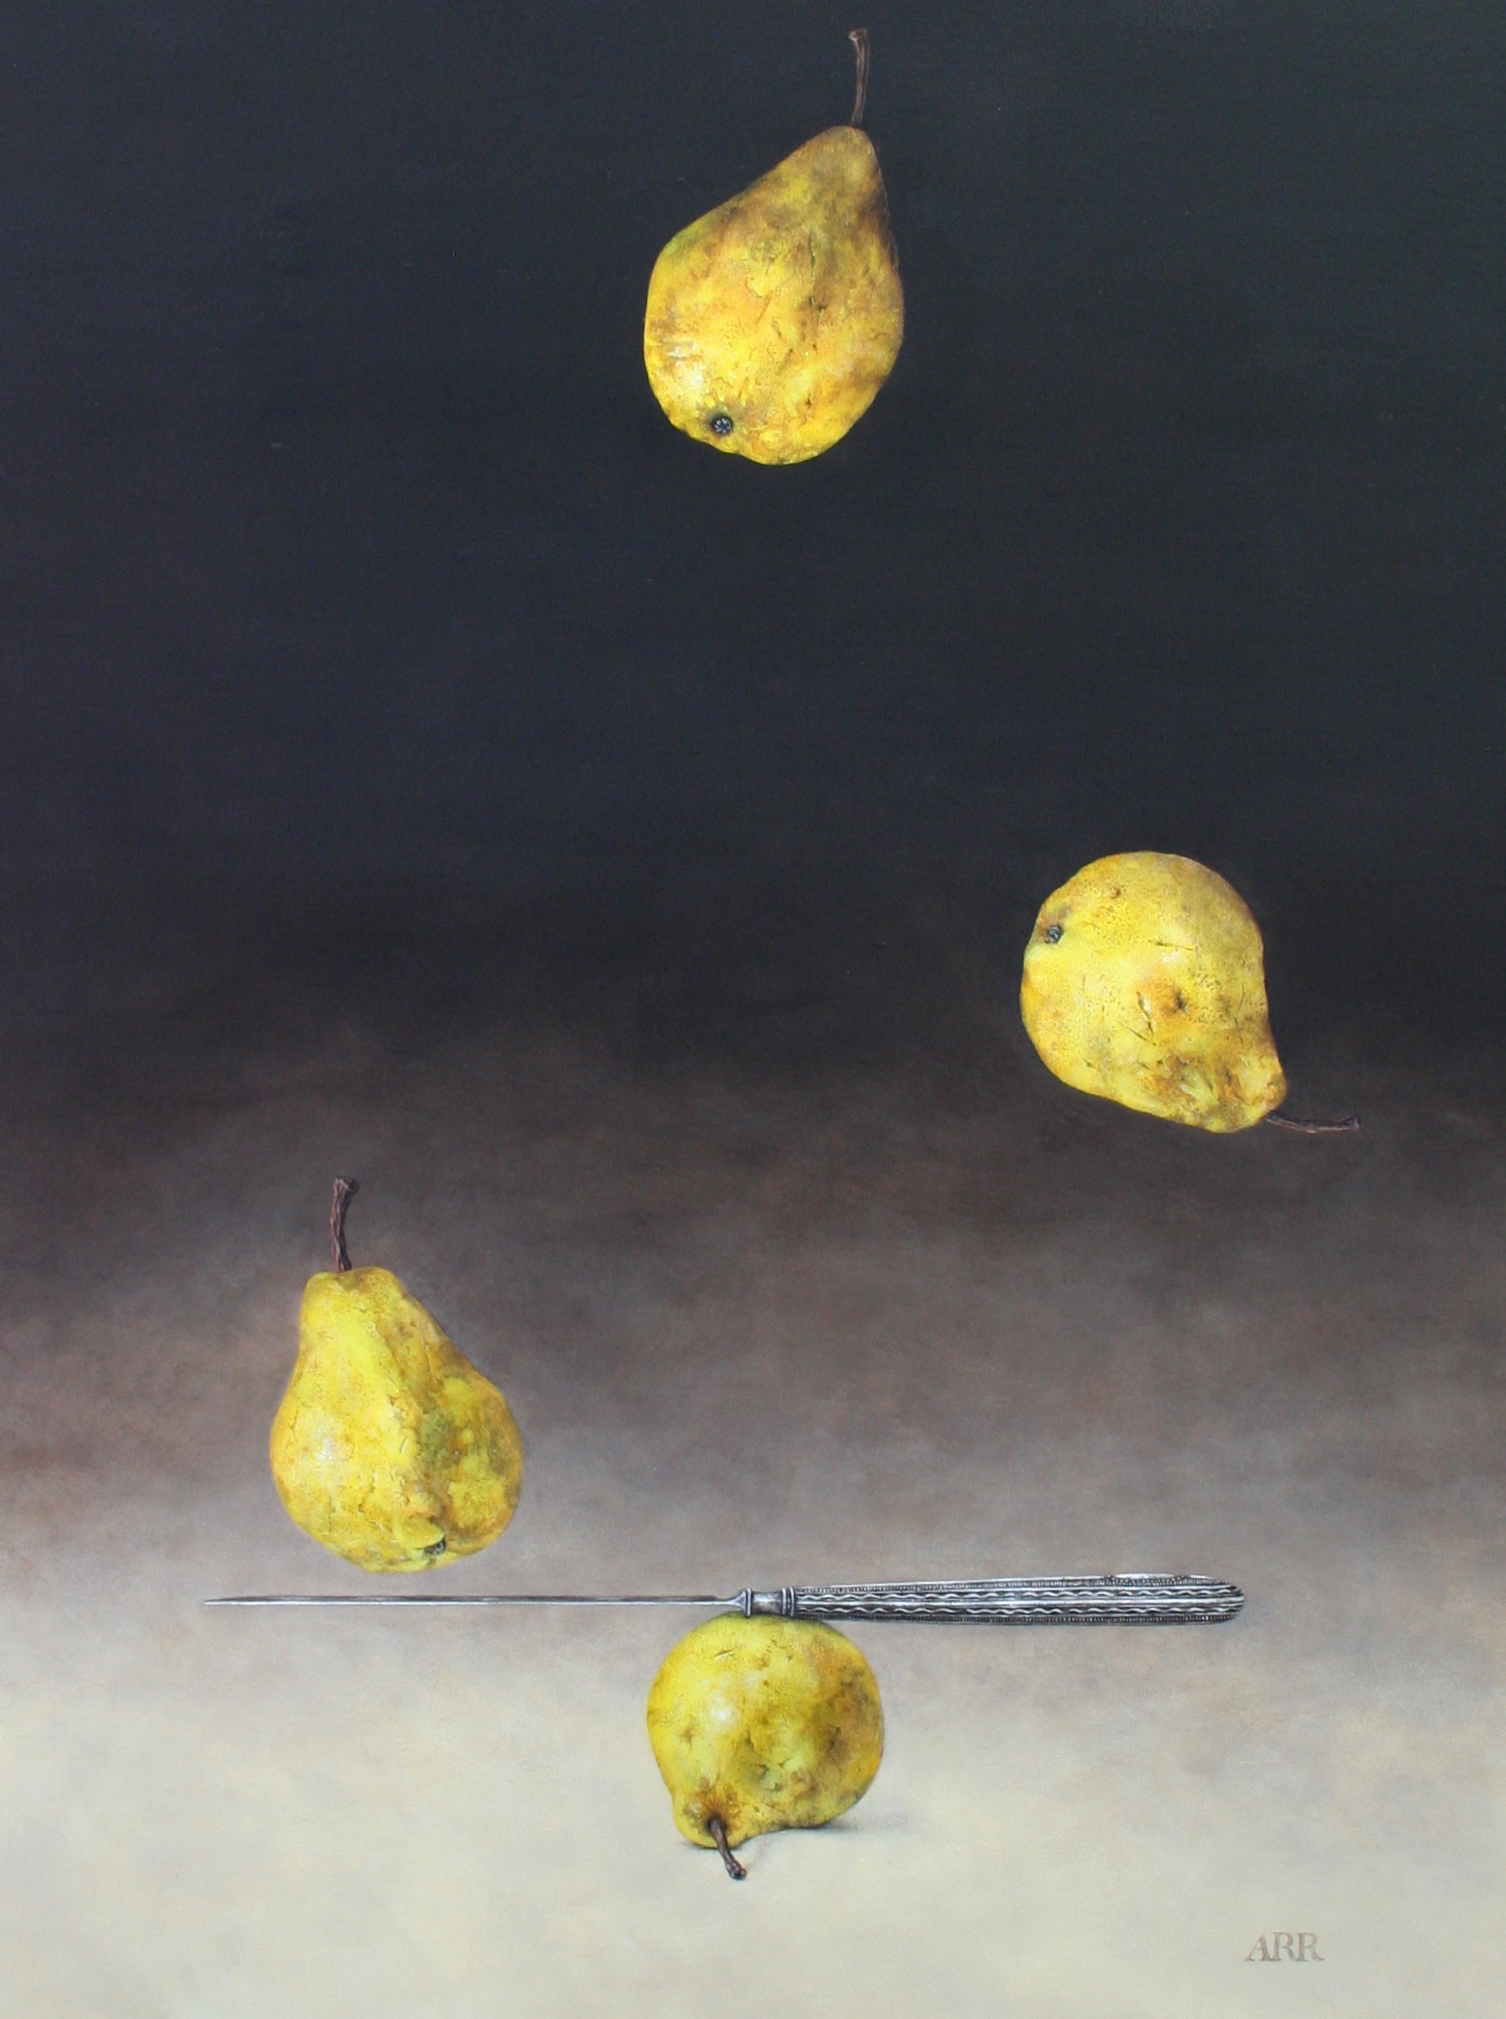 Falling Pears with Balancing Knife